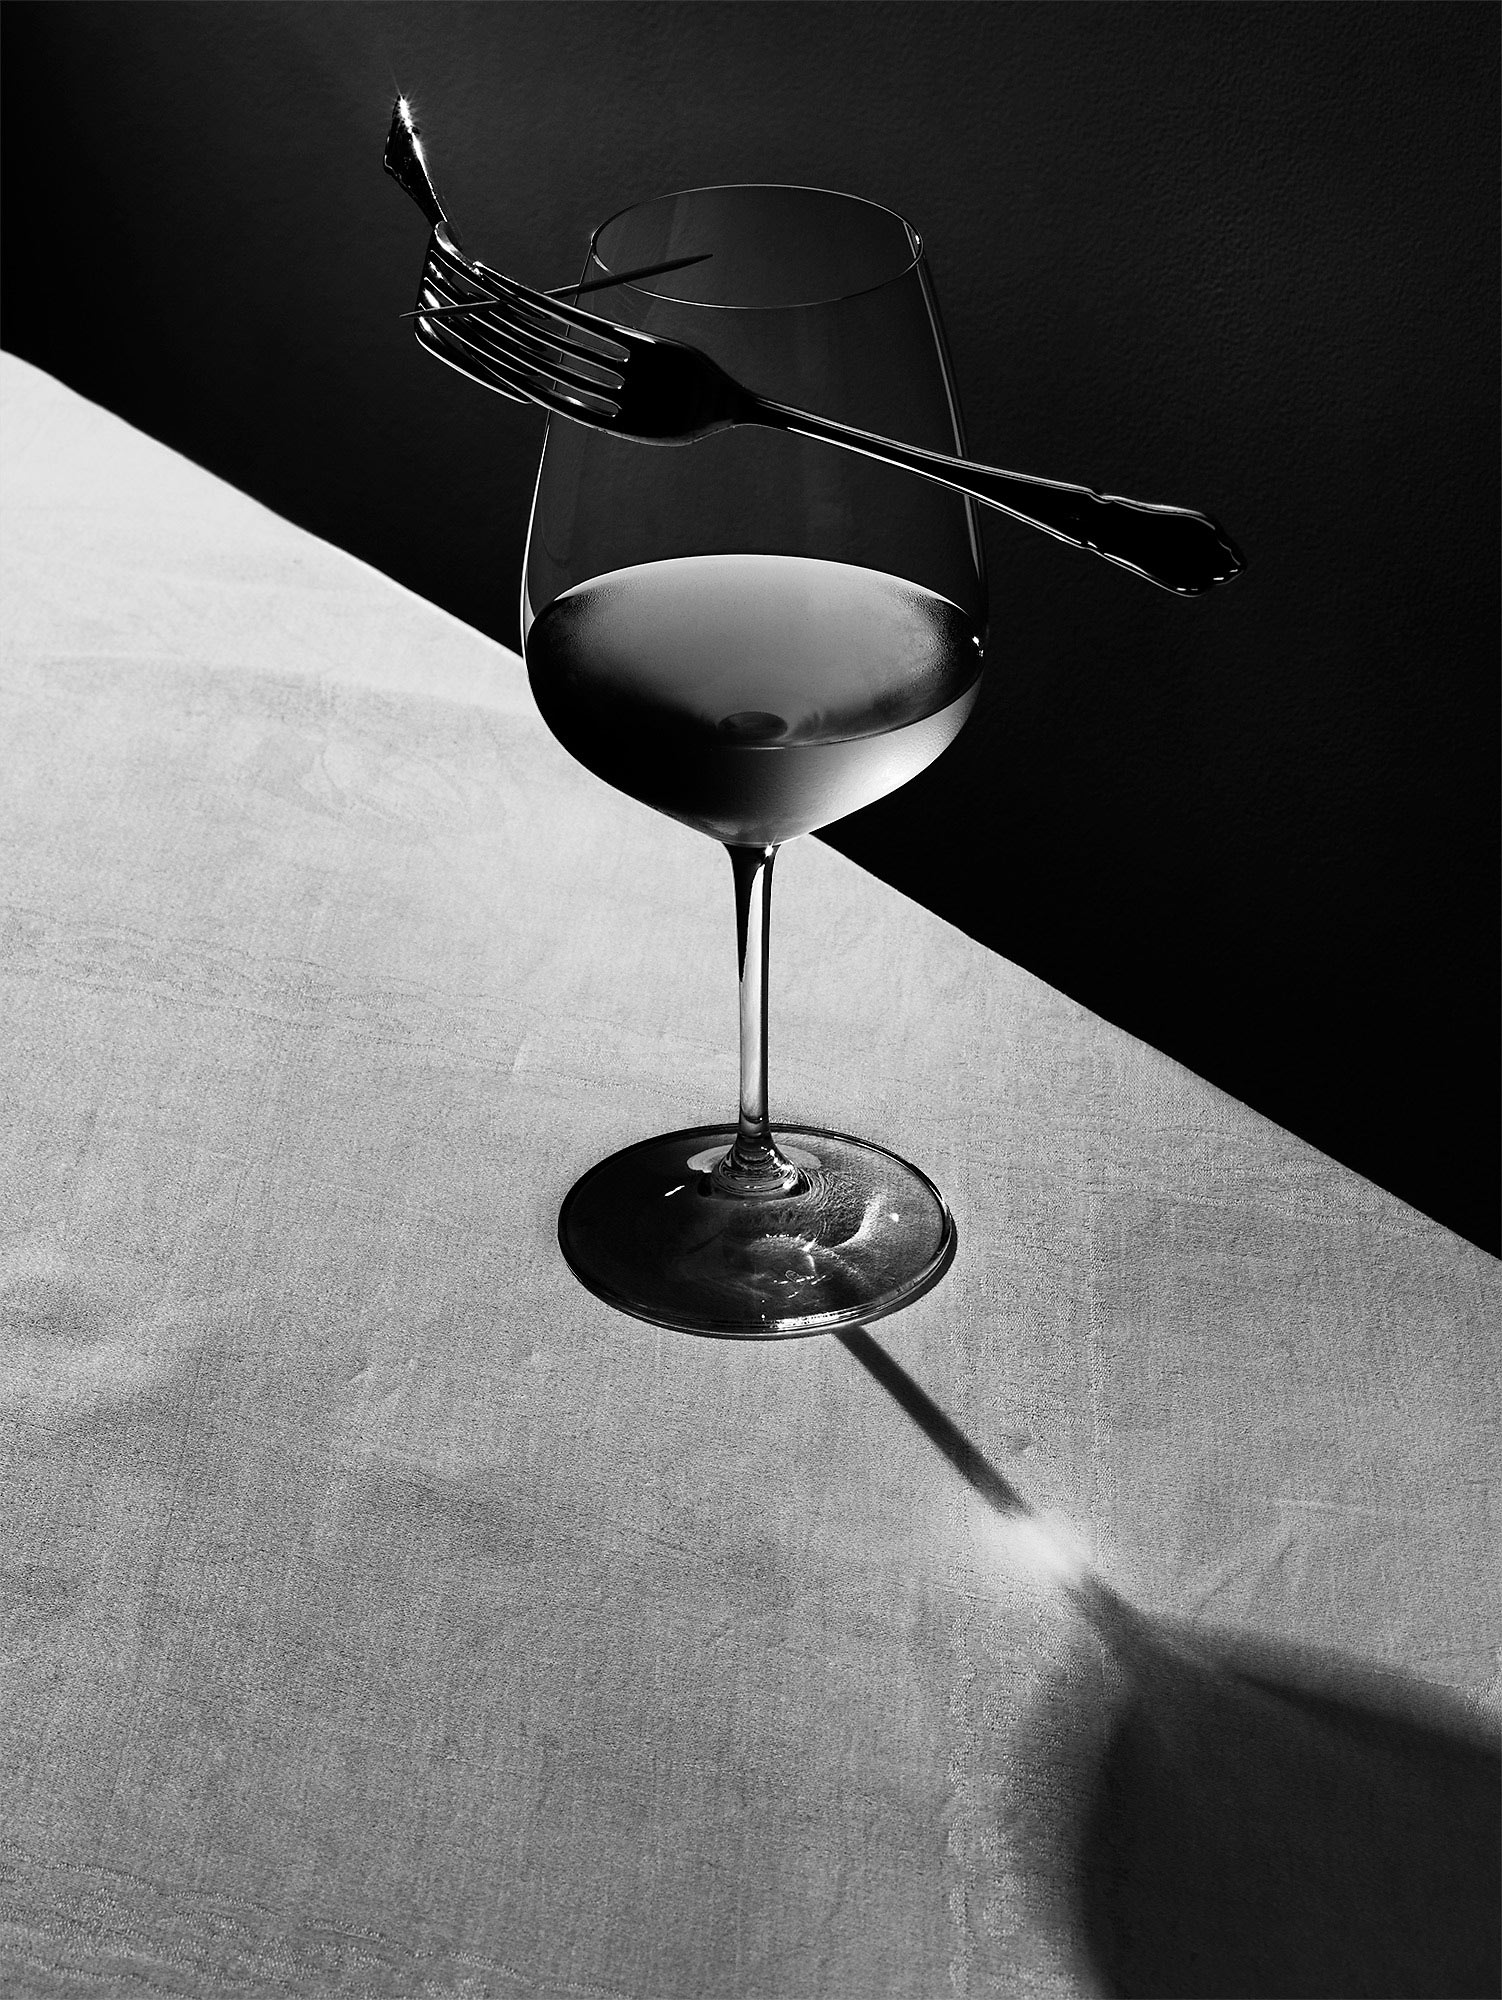 Nick_Rees-GLASS_BALANCE_0182-